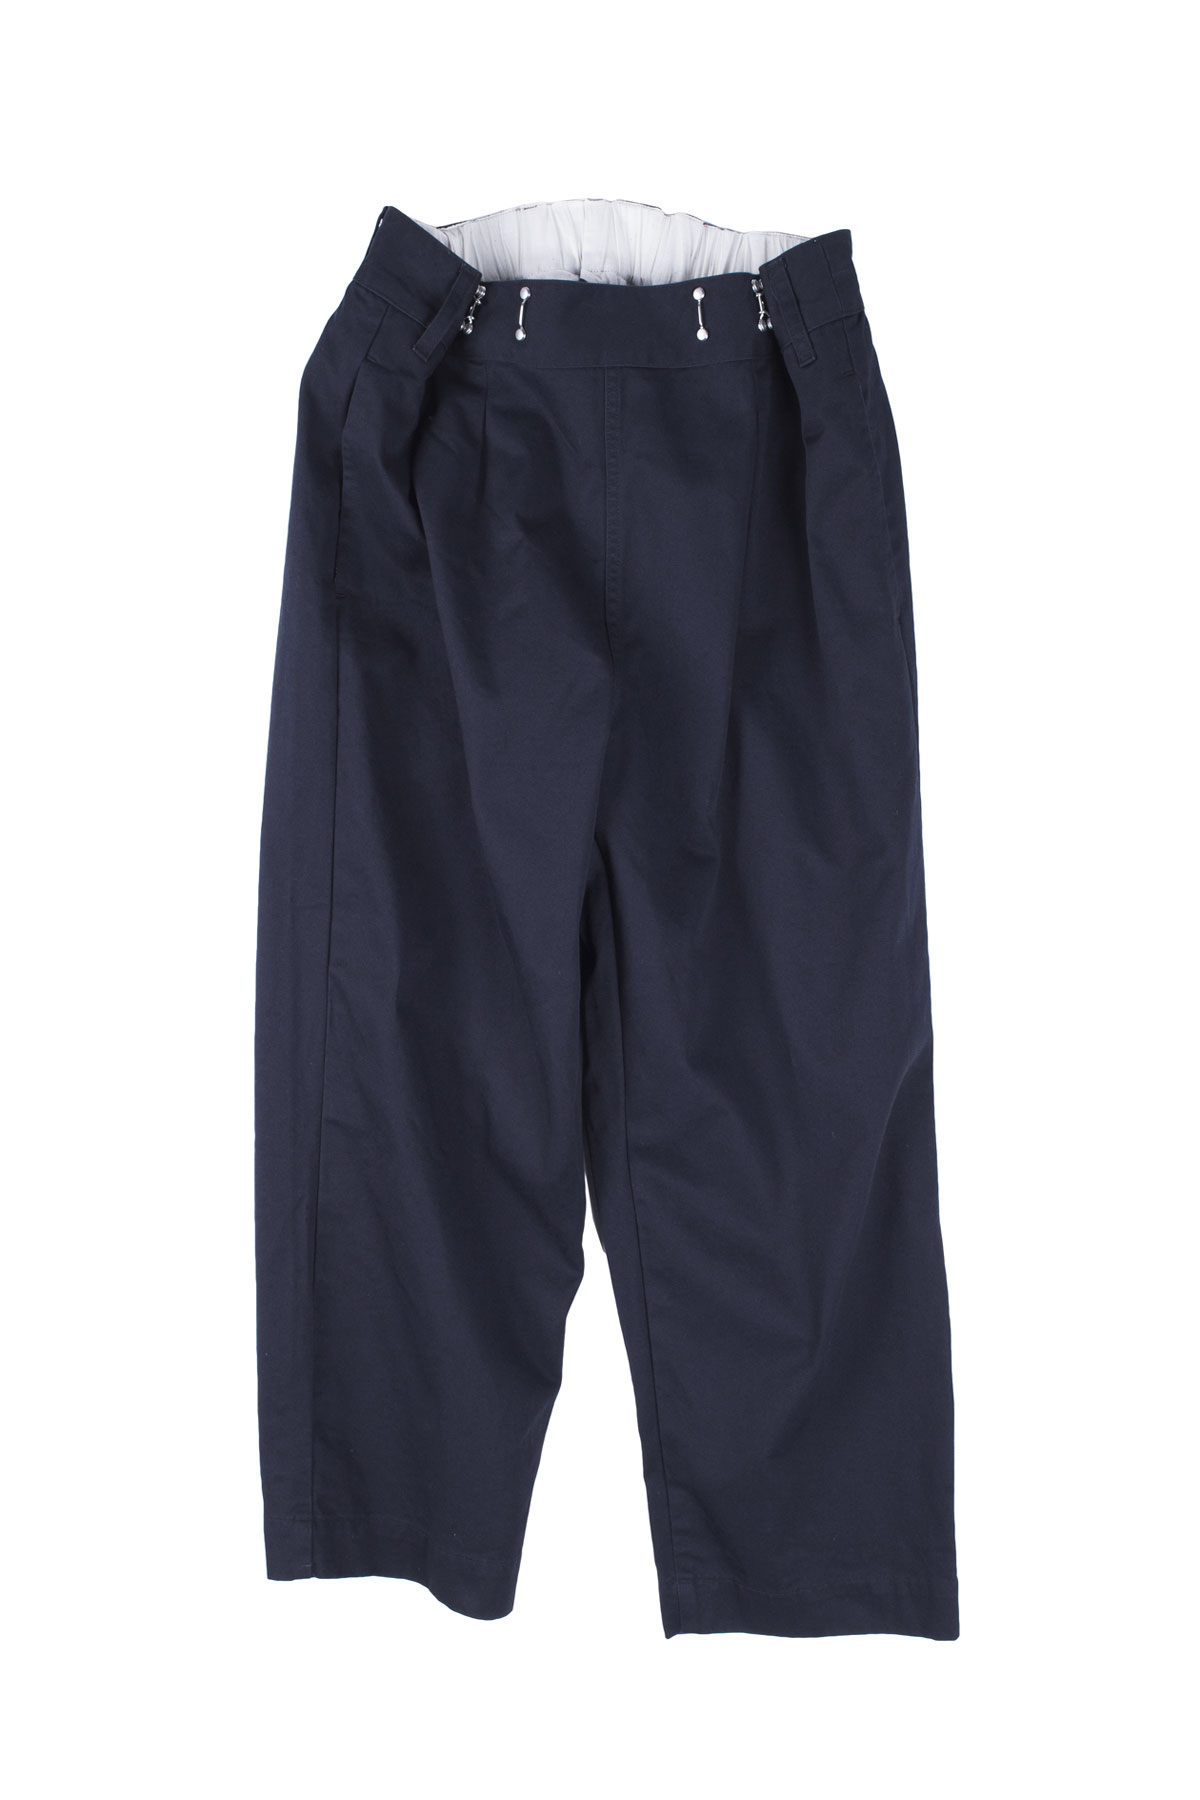 Ordinary fits : Bottles Chino Pants (Navy)